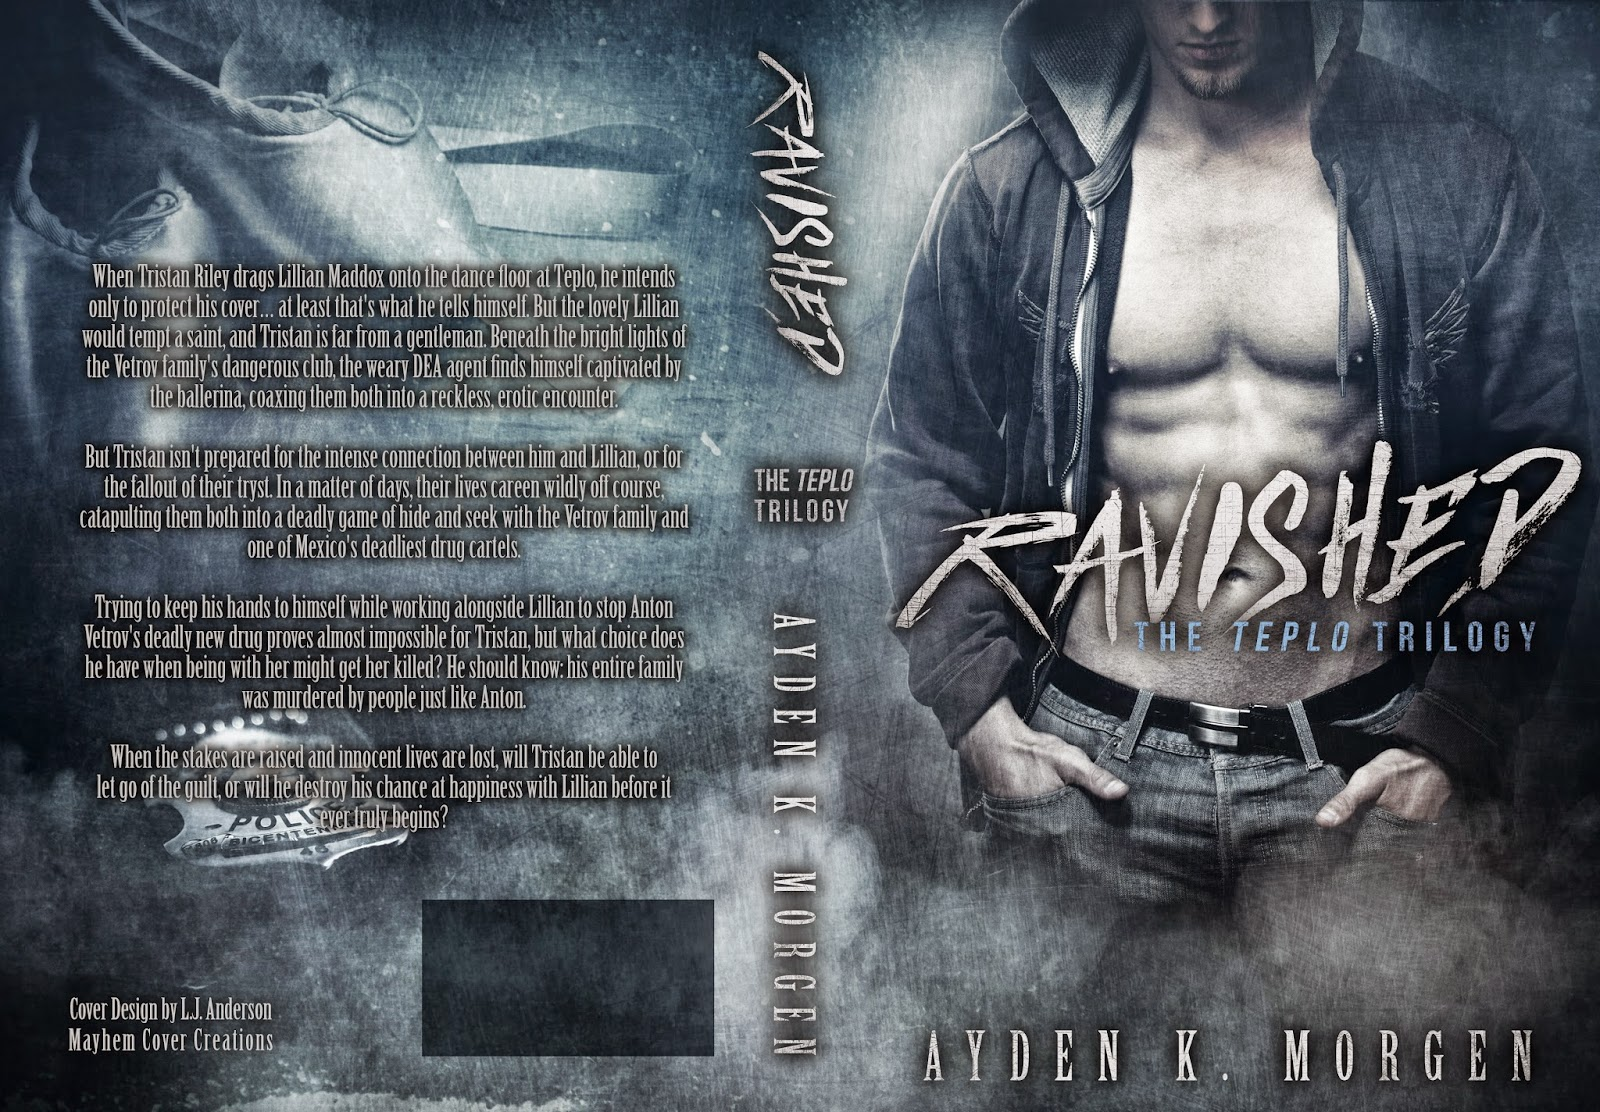 Ravished by Ayden K Morgen